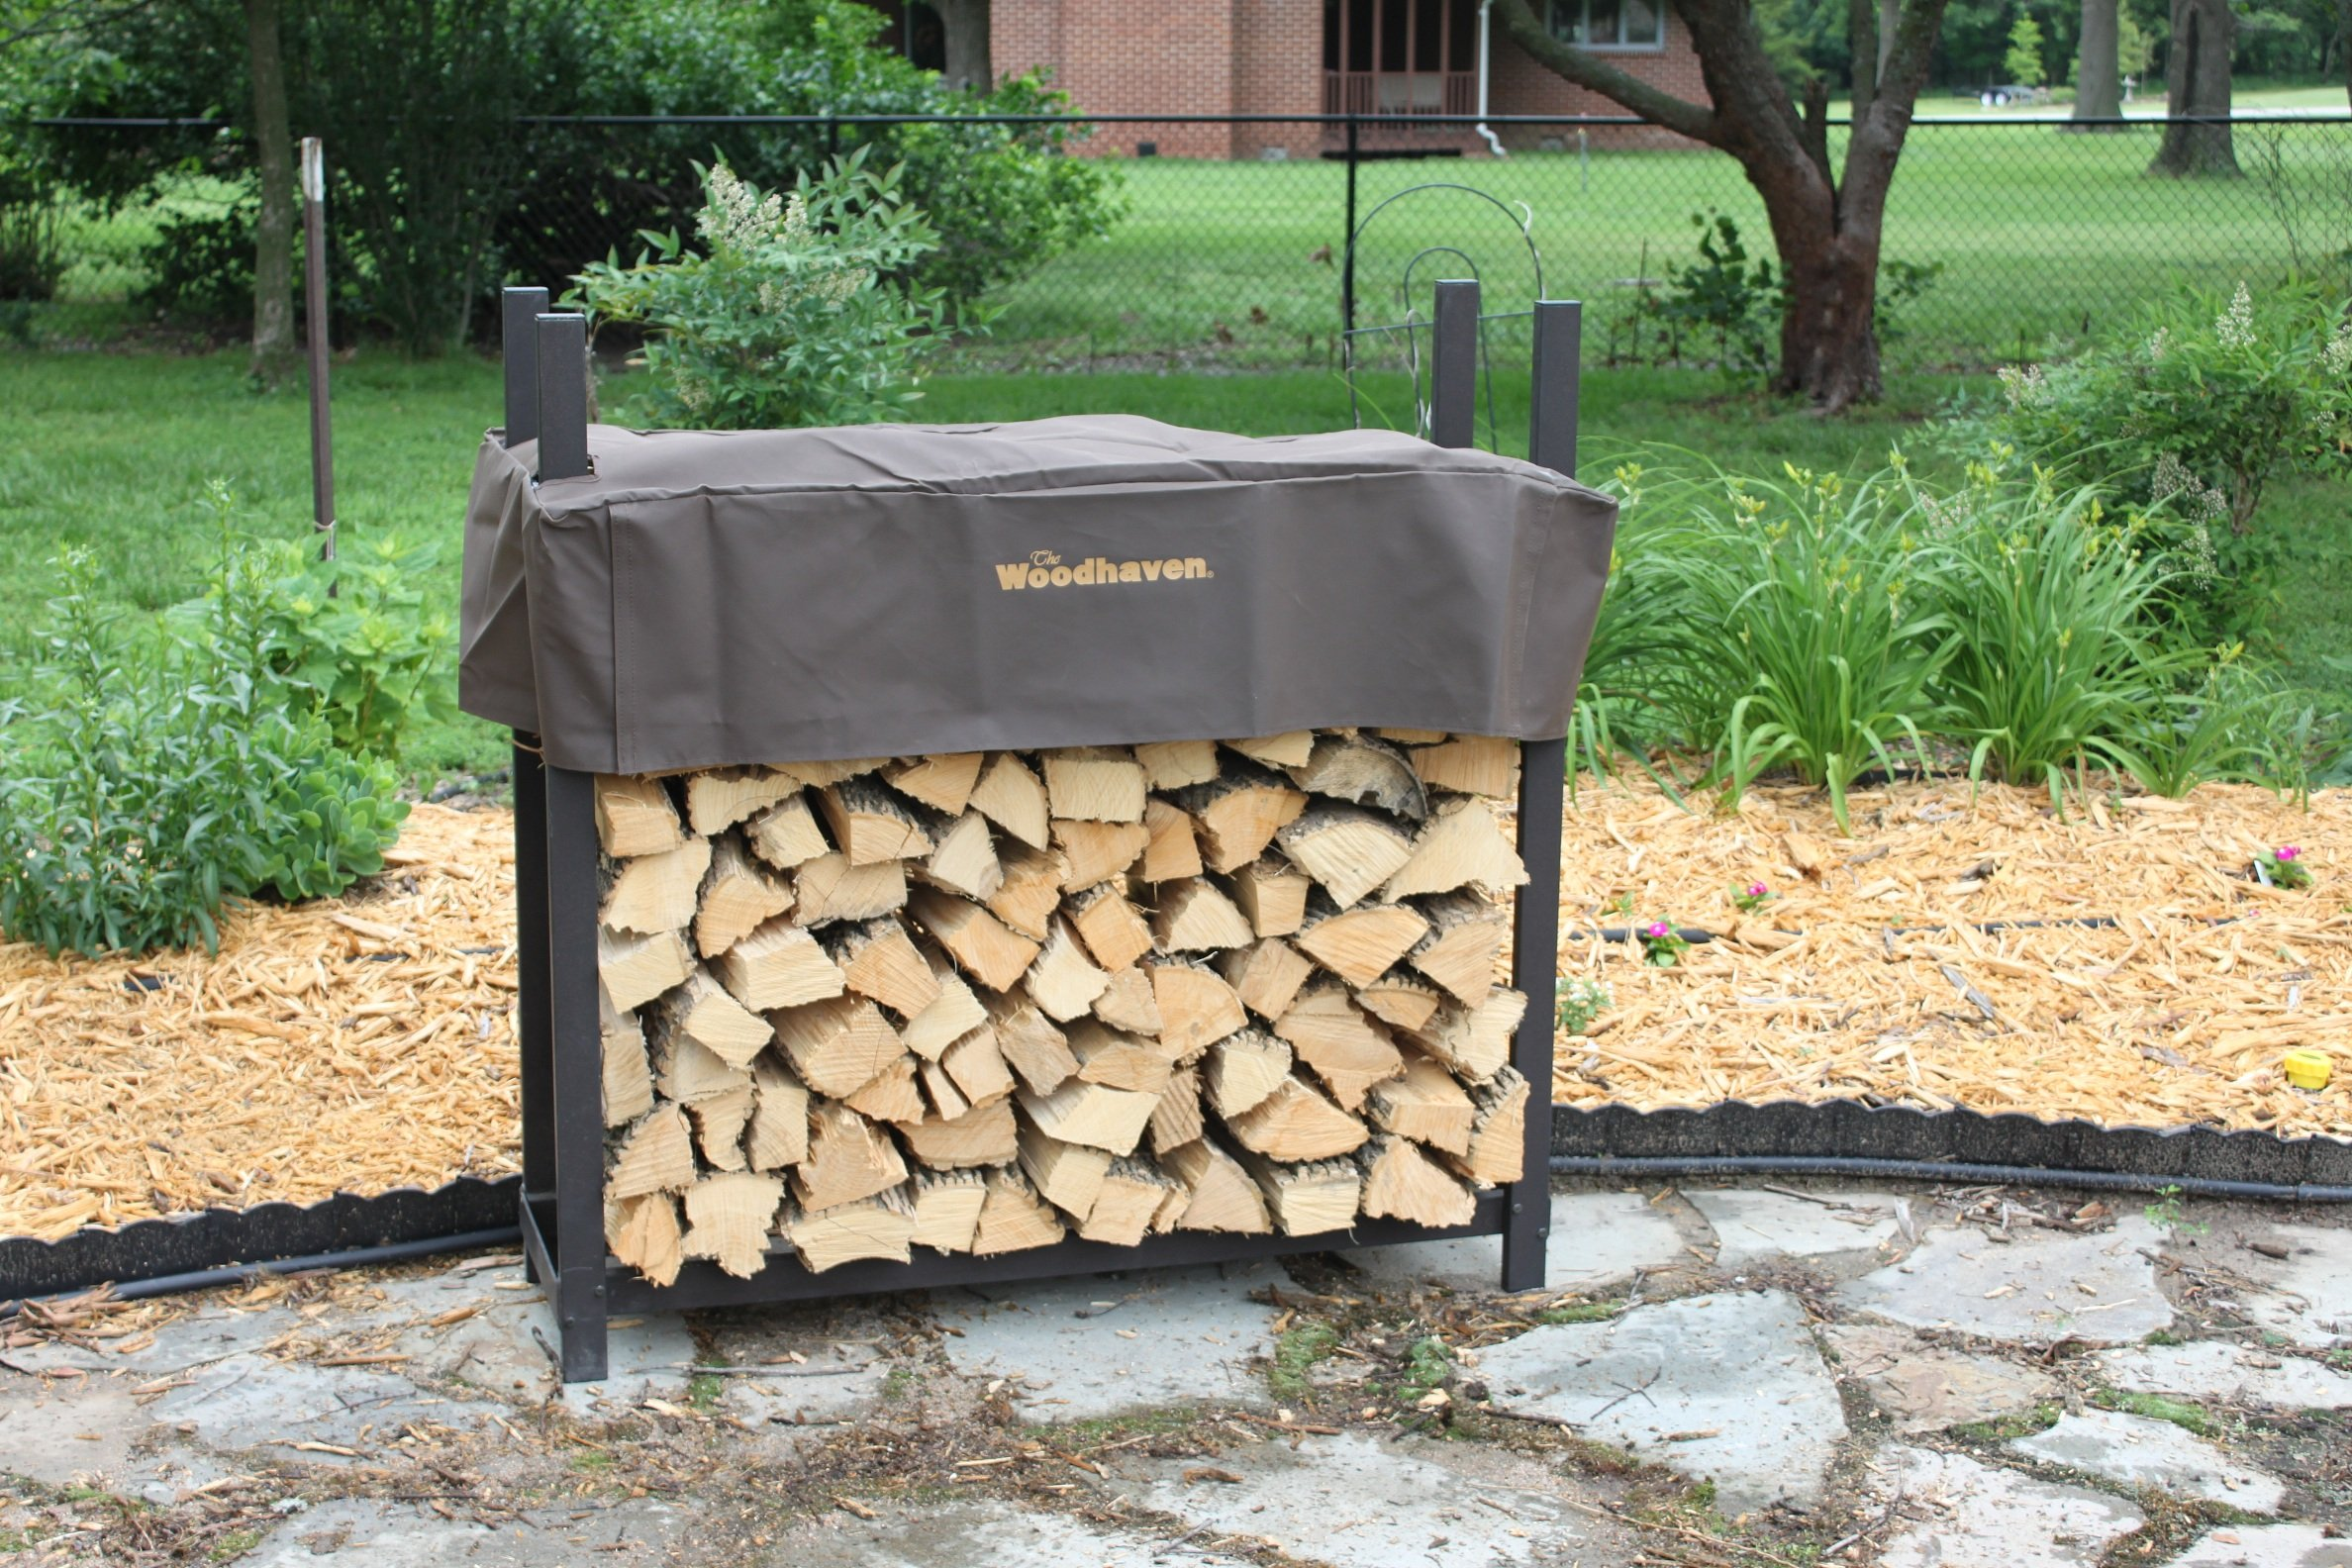 The Woodhaven 4 Foot Brown Outdoor Firewood Log Rack with Cover